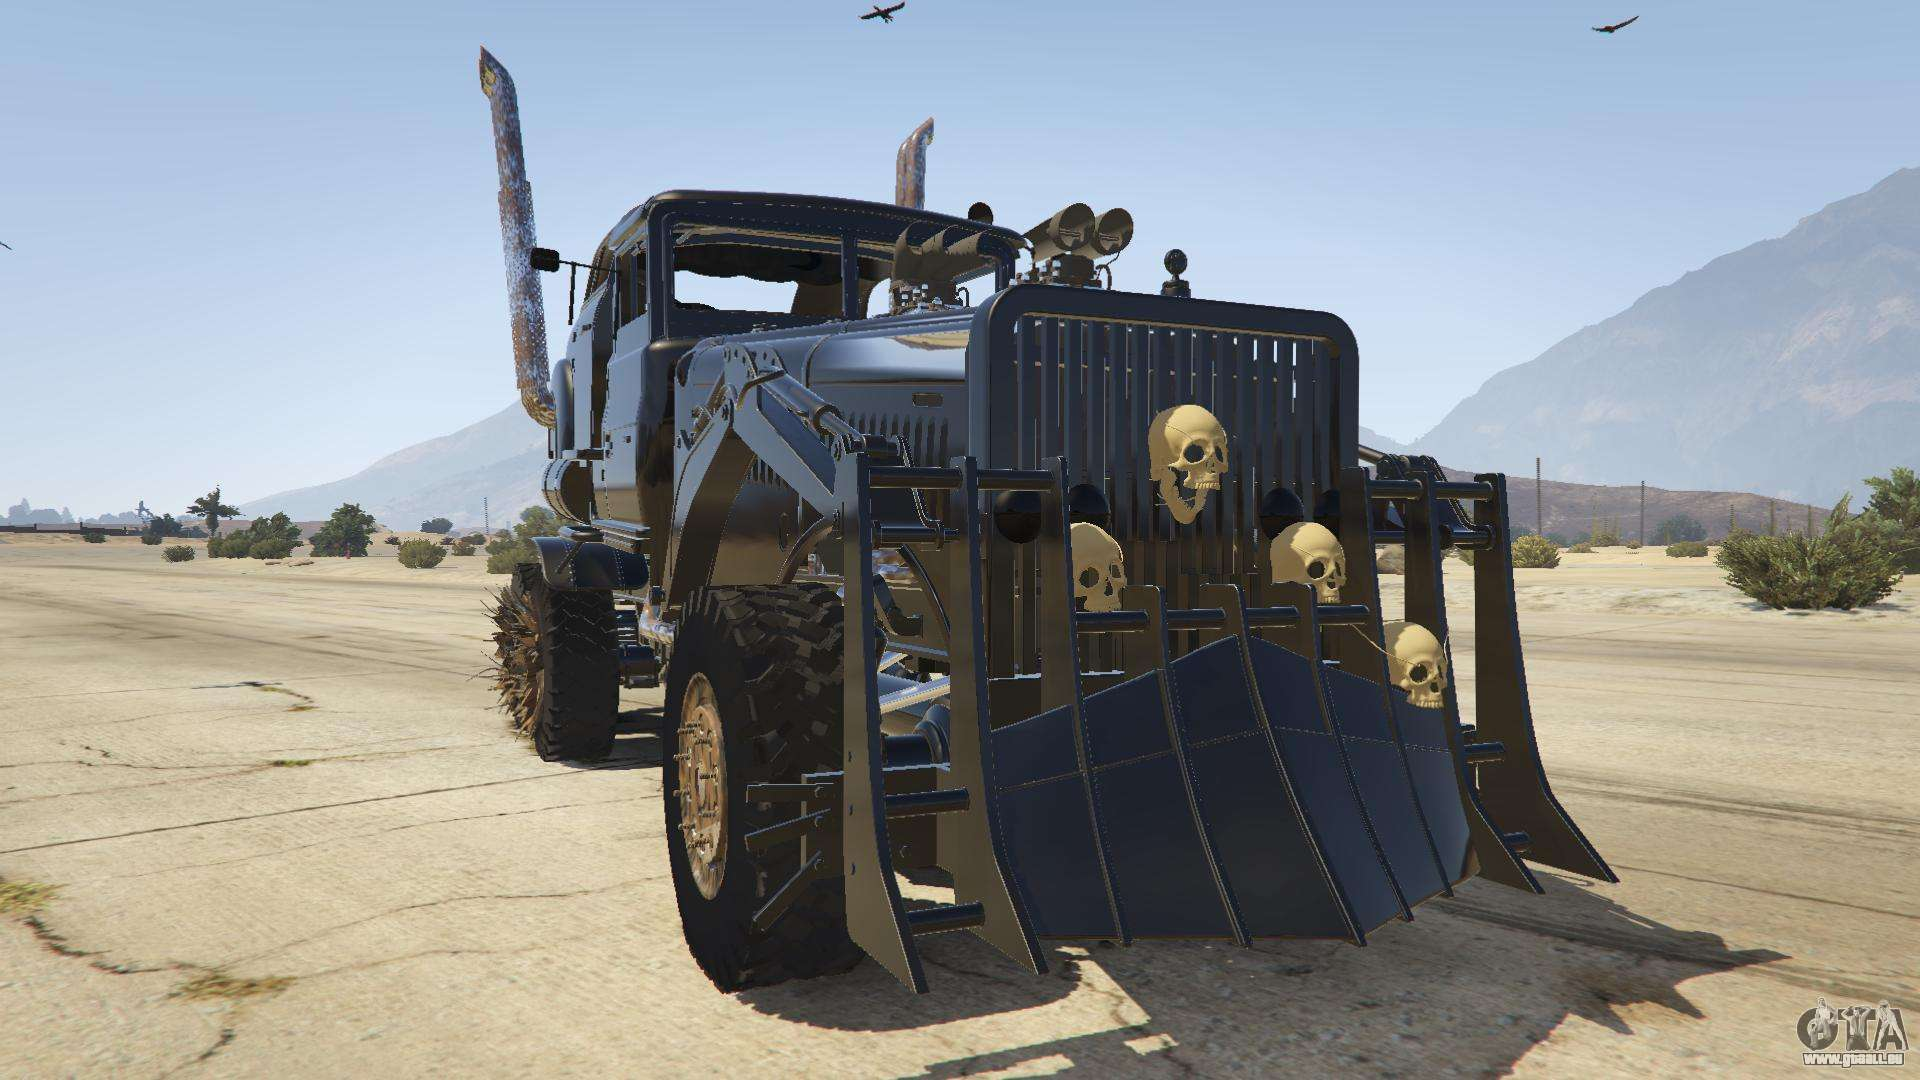 Mad Max Game Map Locations Free Engine Image For User Manual Diagram Car On Gta 5 Location